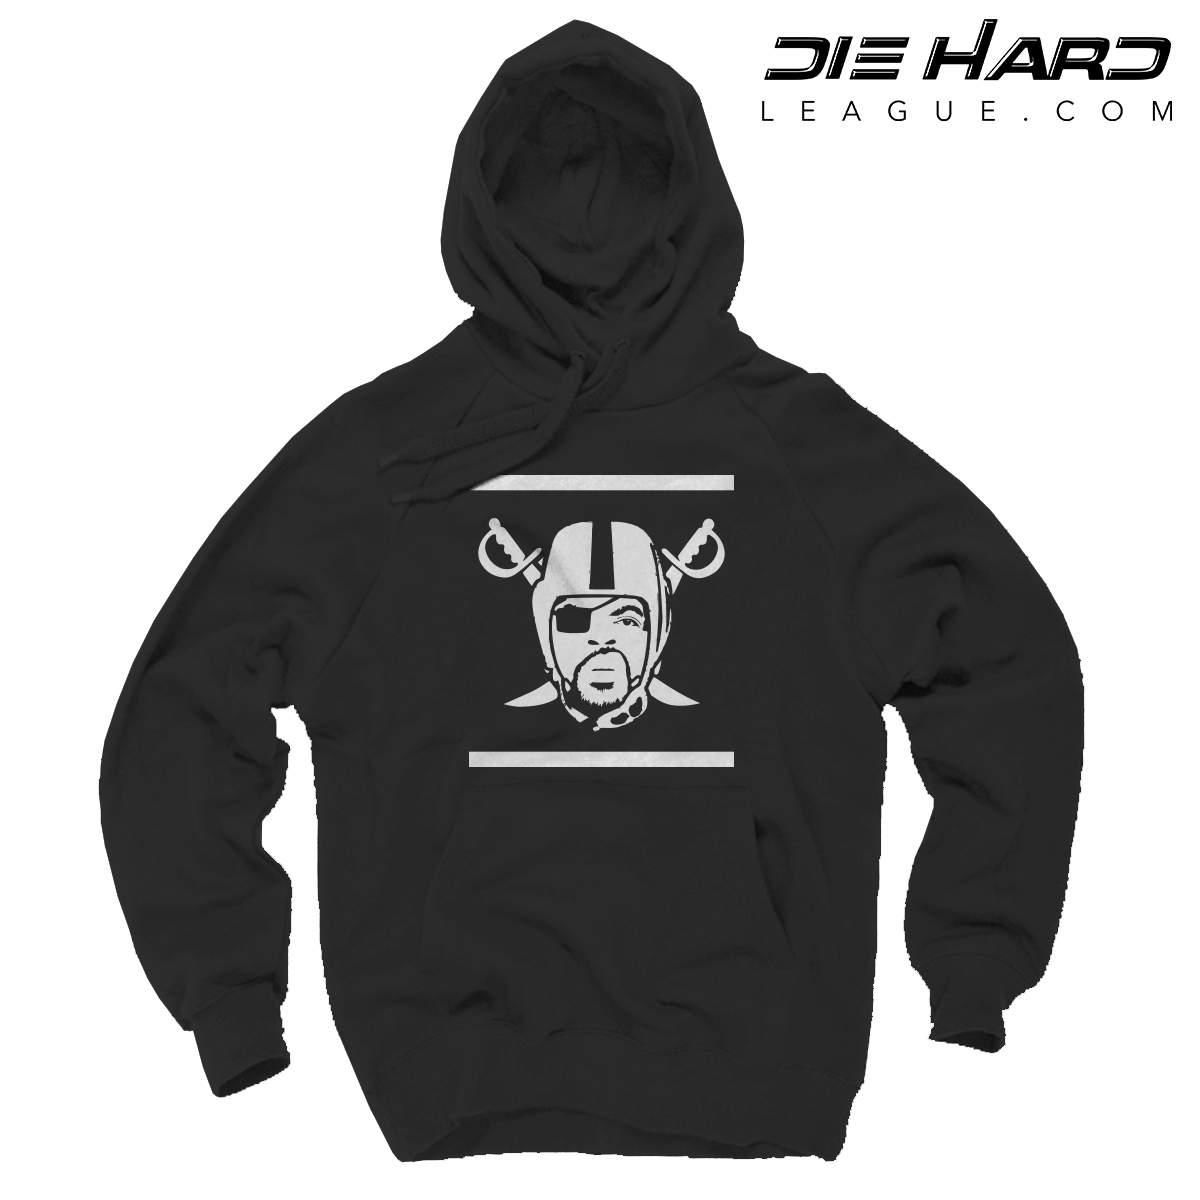 on sale dc40e 7a202 Oakland Raiders Hoodies - Ice Cube Raiders Logo Black Hoodie